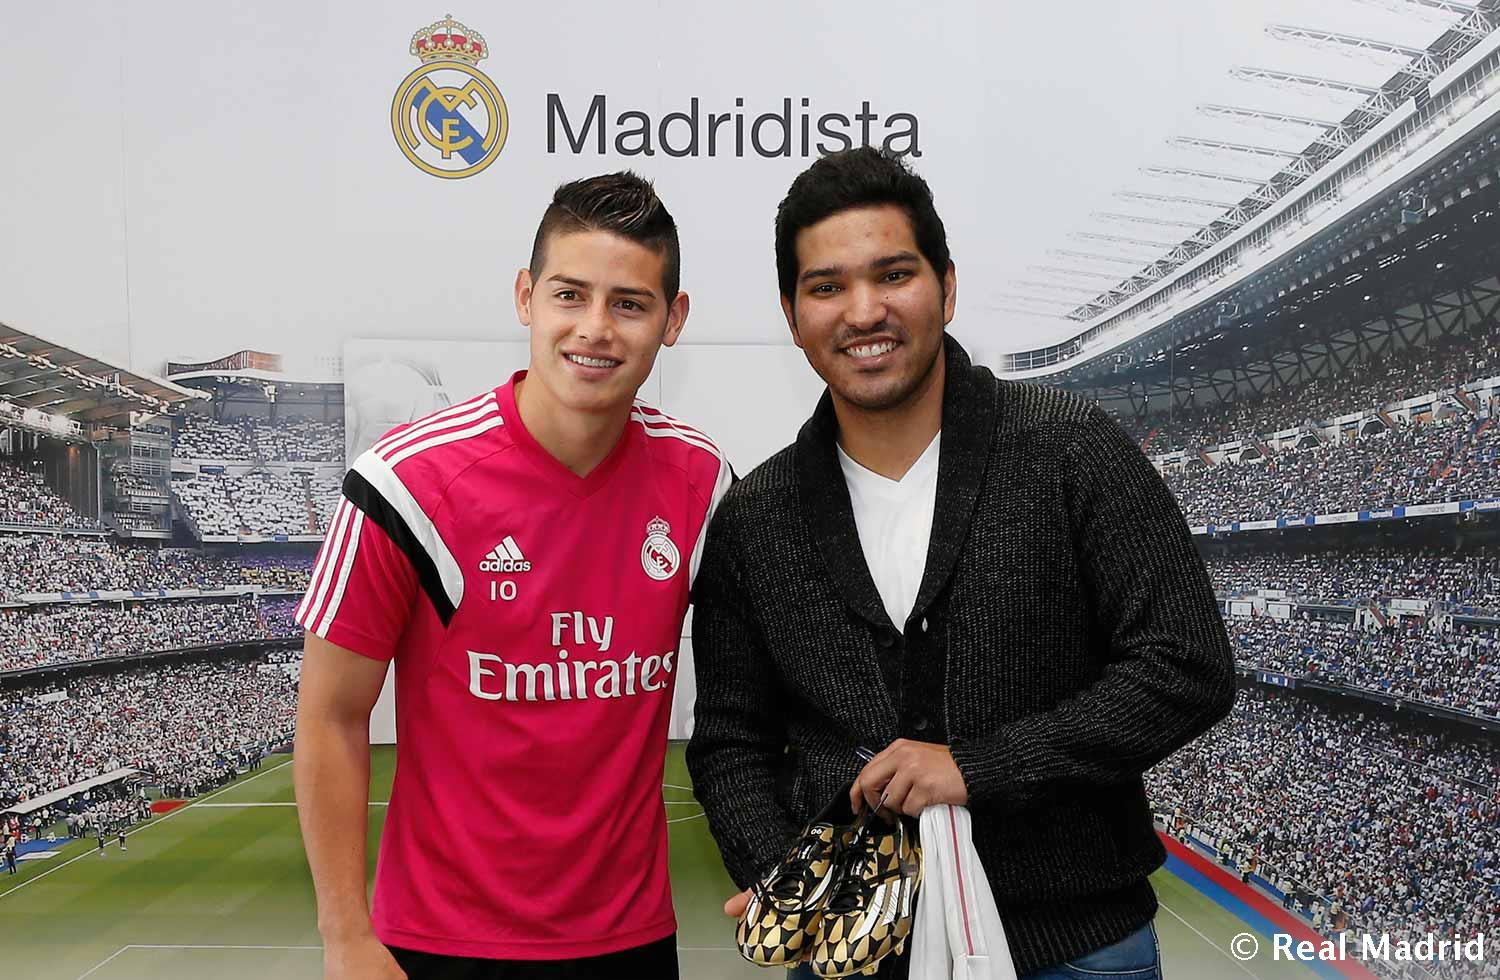 Real Madrid - The winner of the draw for a pair of James Rodríguez's boots poses with the player - 07-04-2015